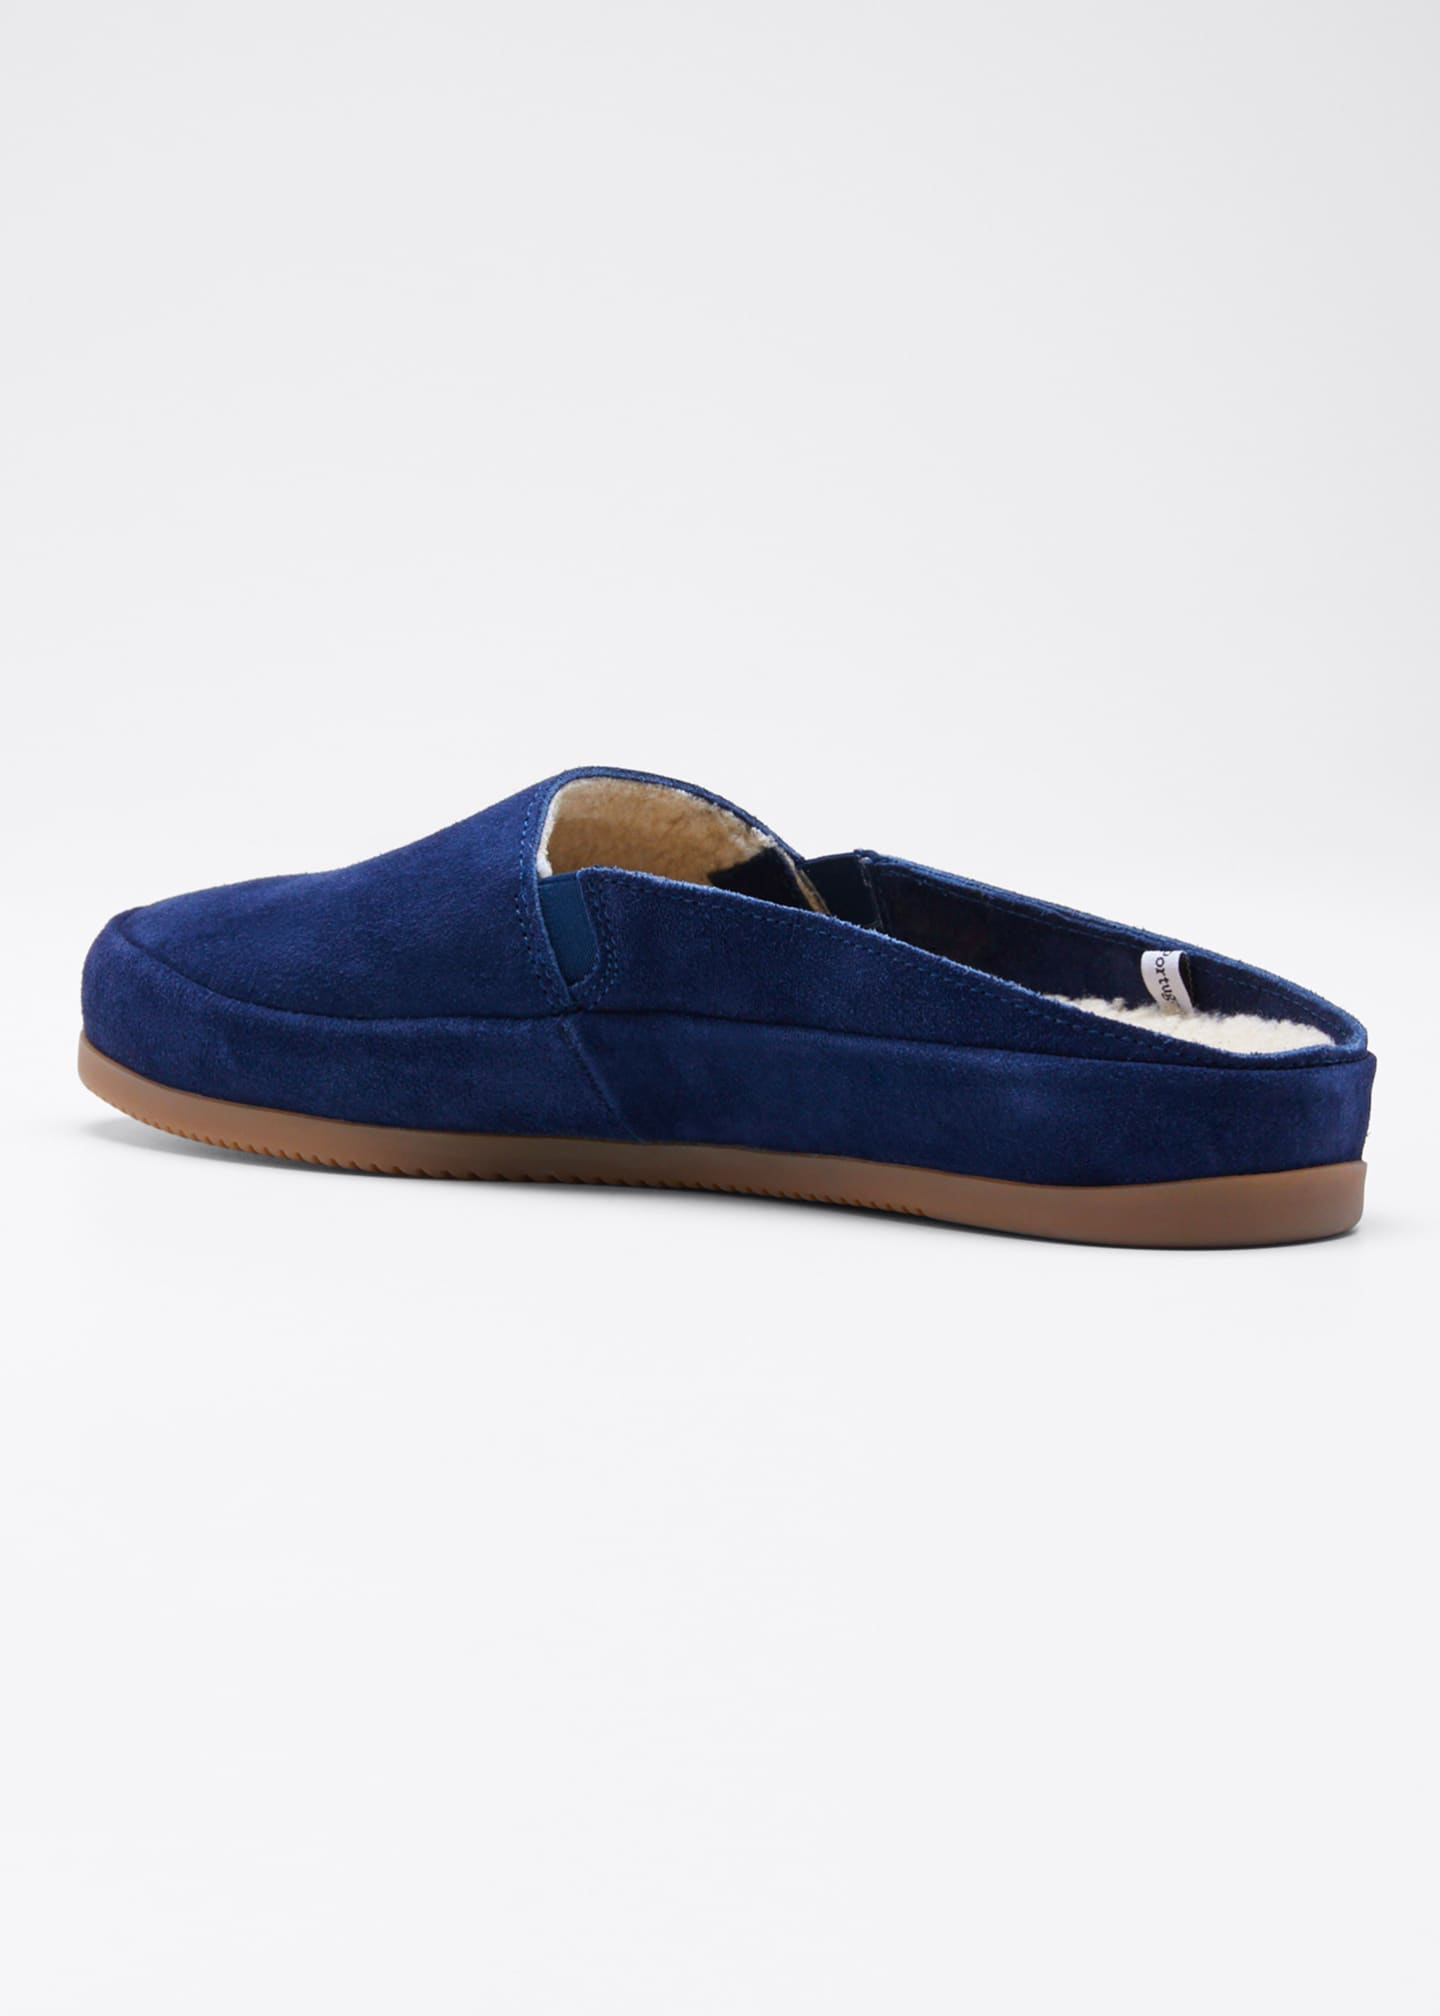 Image 2 of 3: Men's Suede Shearling Slippers